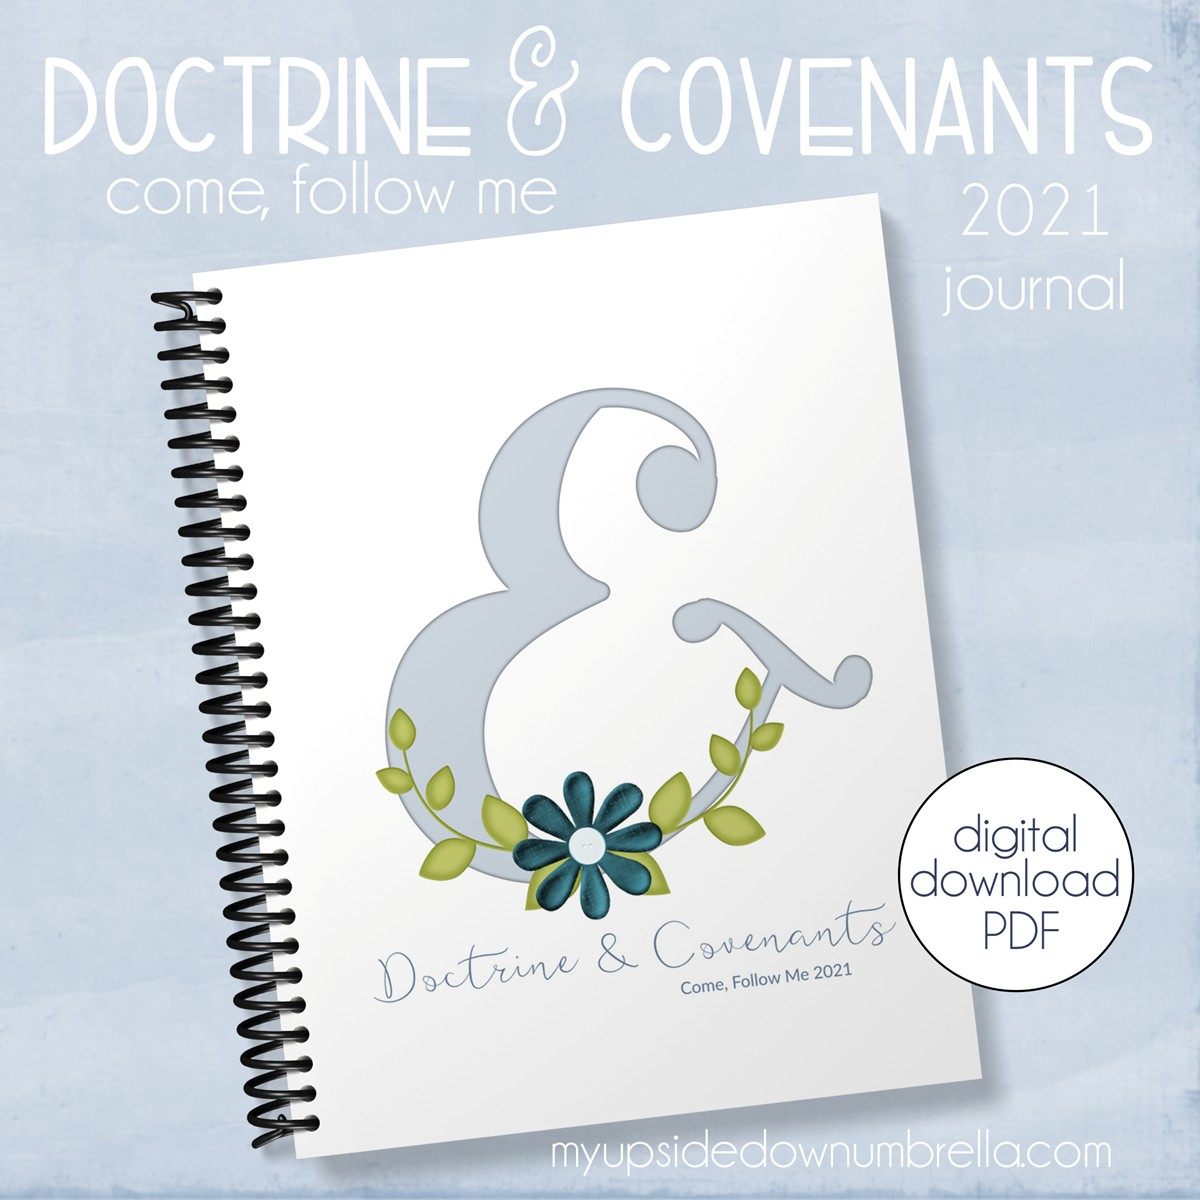 come follow me doctrine and covenants journal 2021